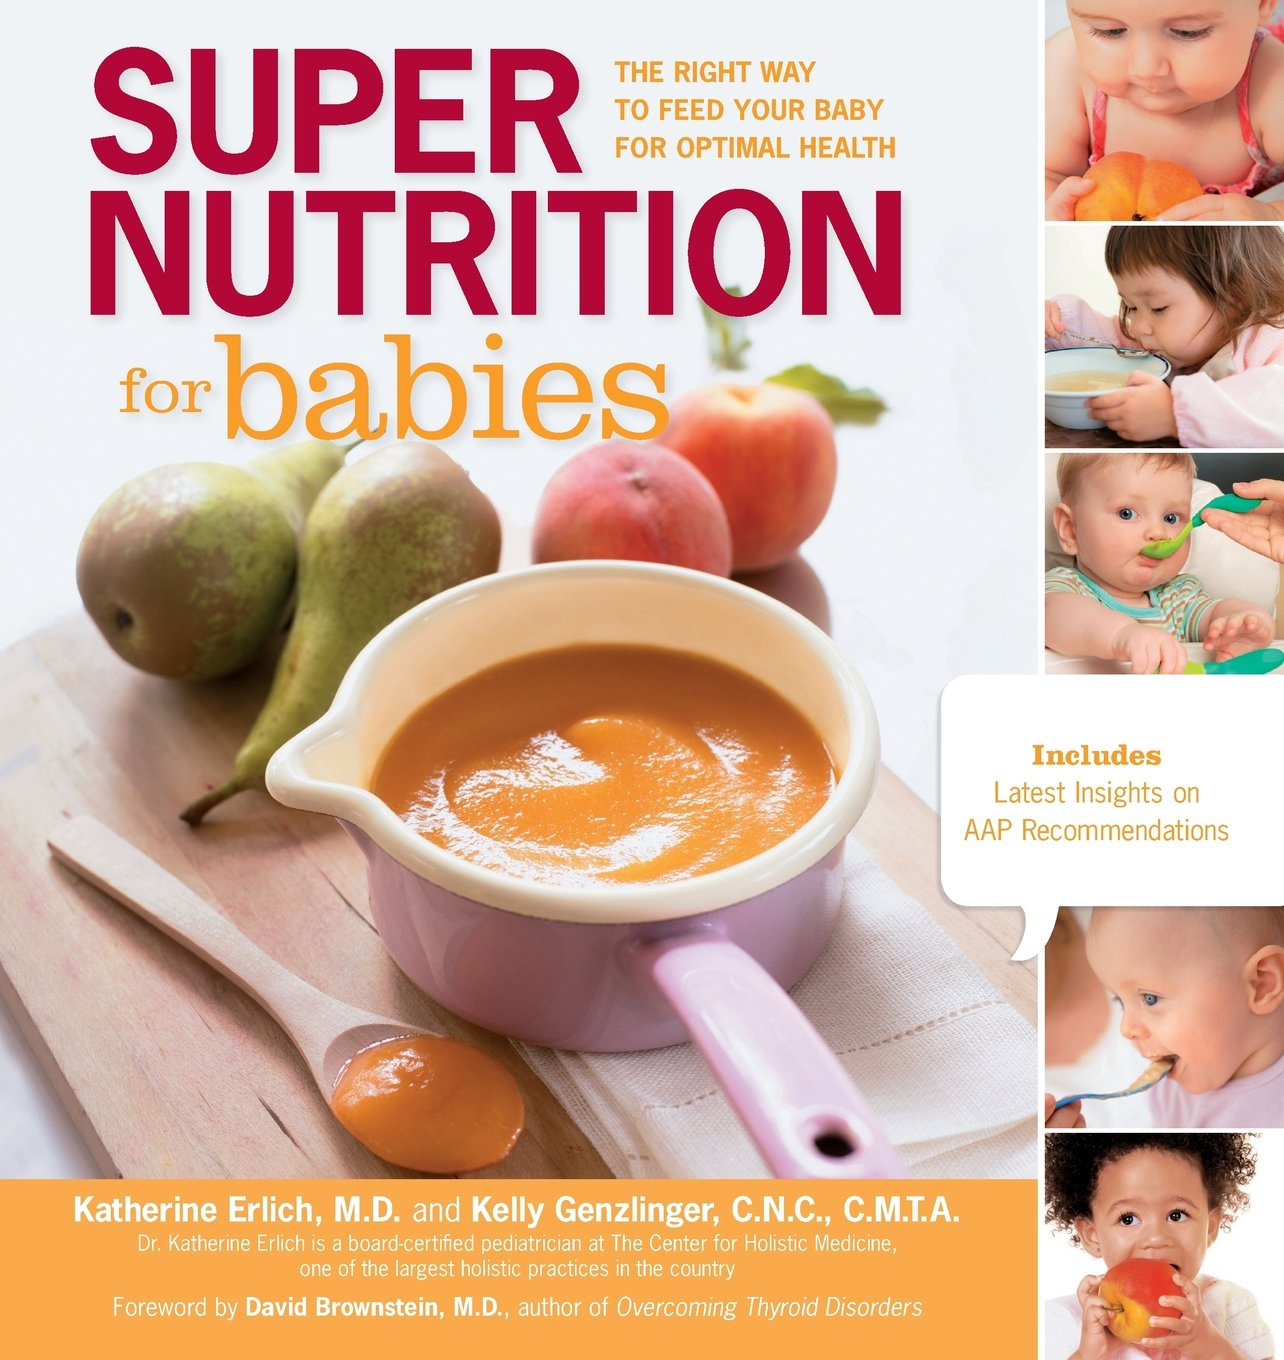 Image OfSuper Nutrition For Babies: The Right Way To Feed Your Baby For Optimal Health